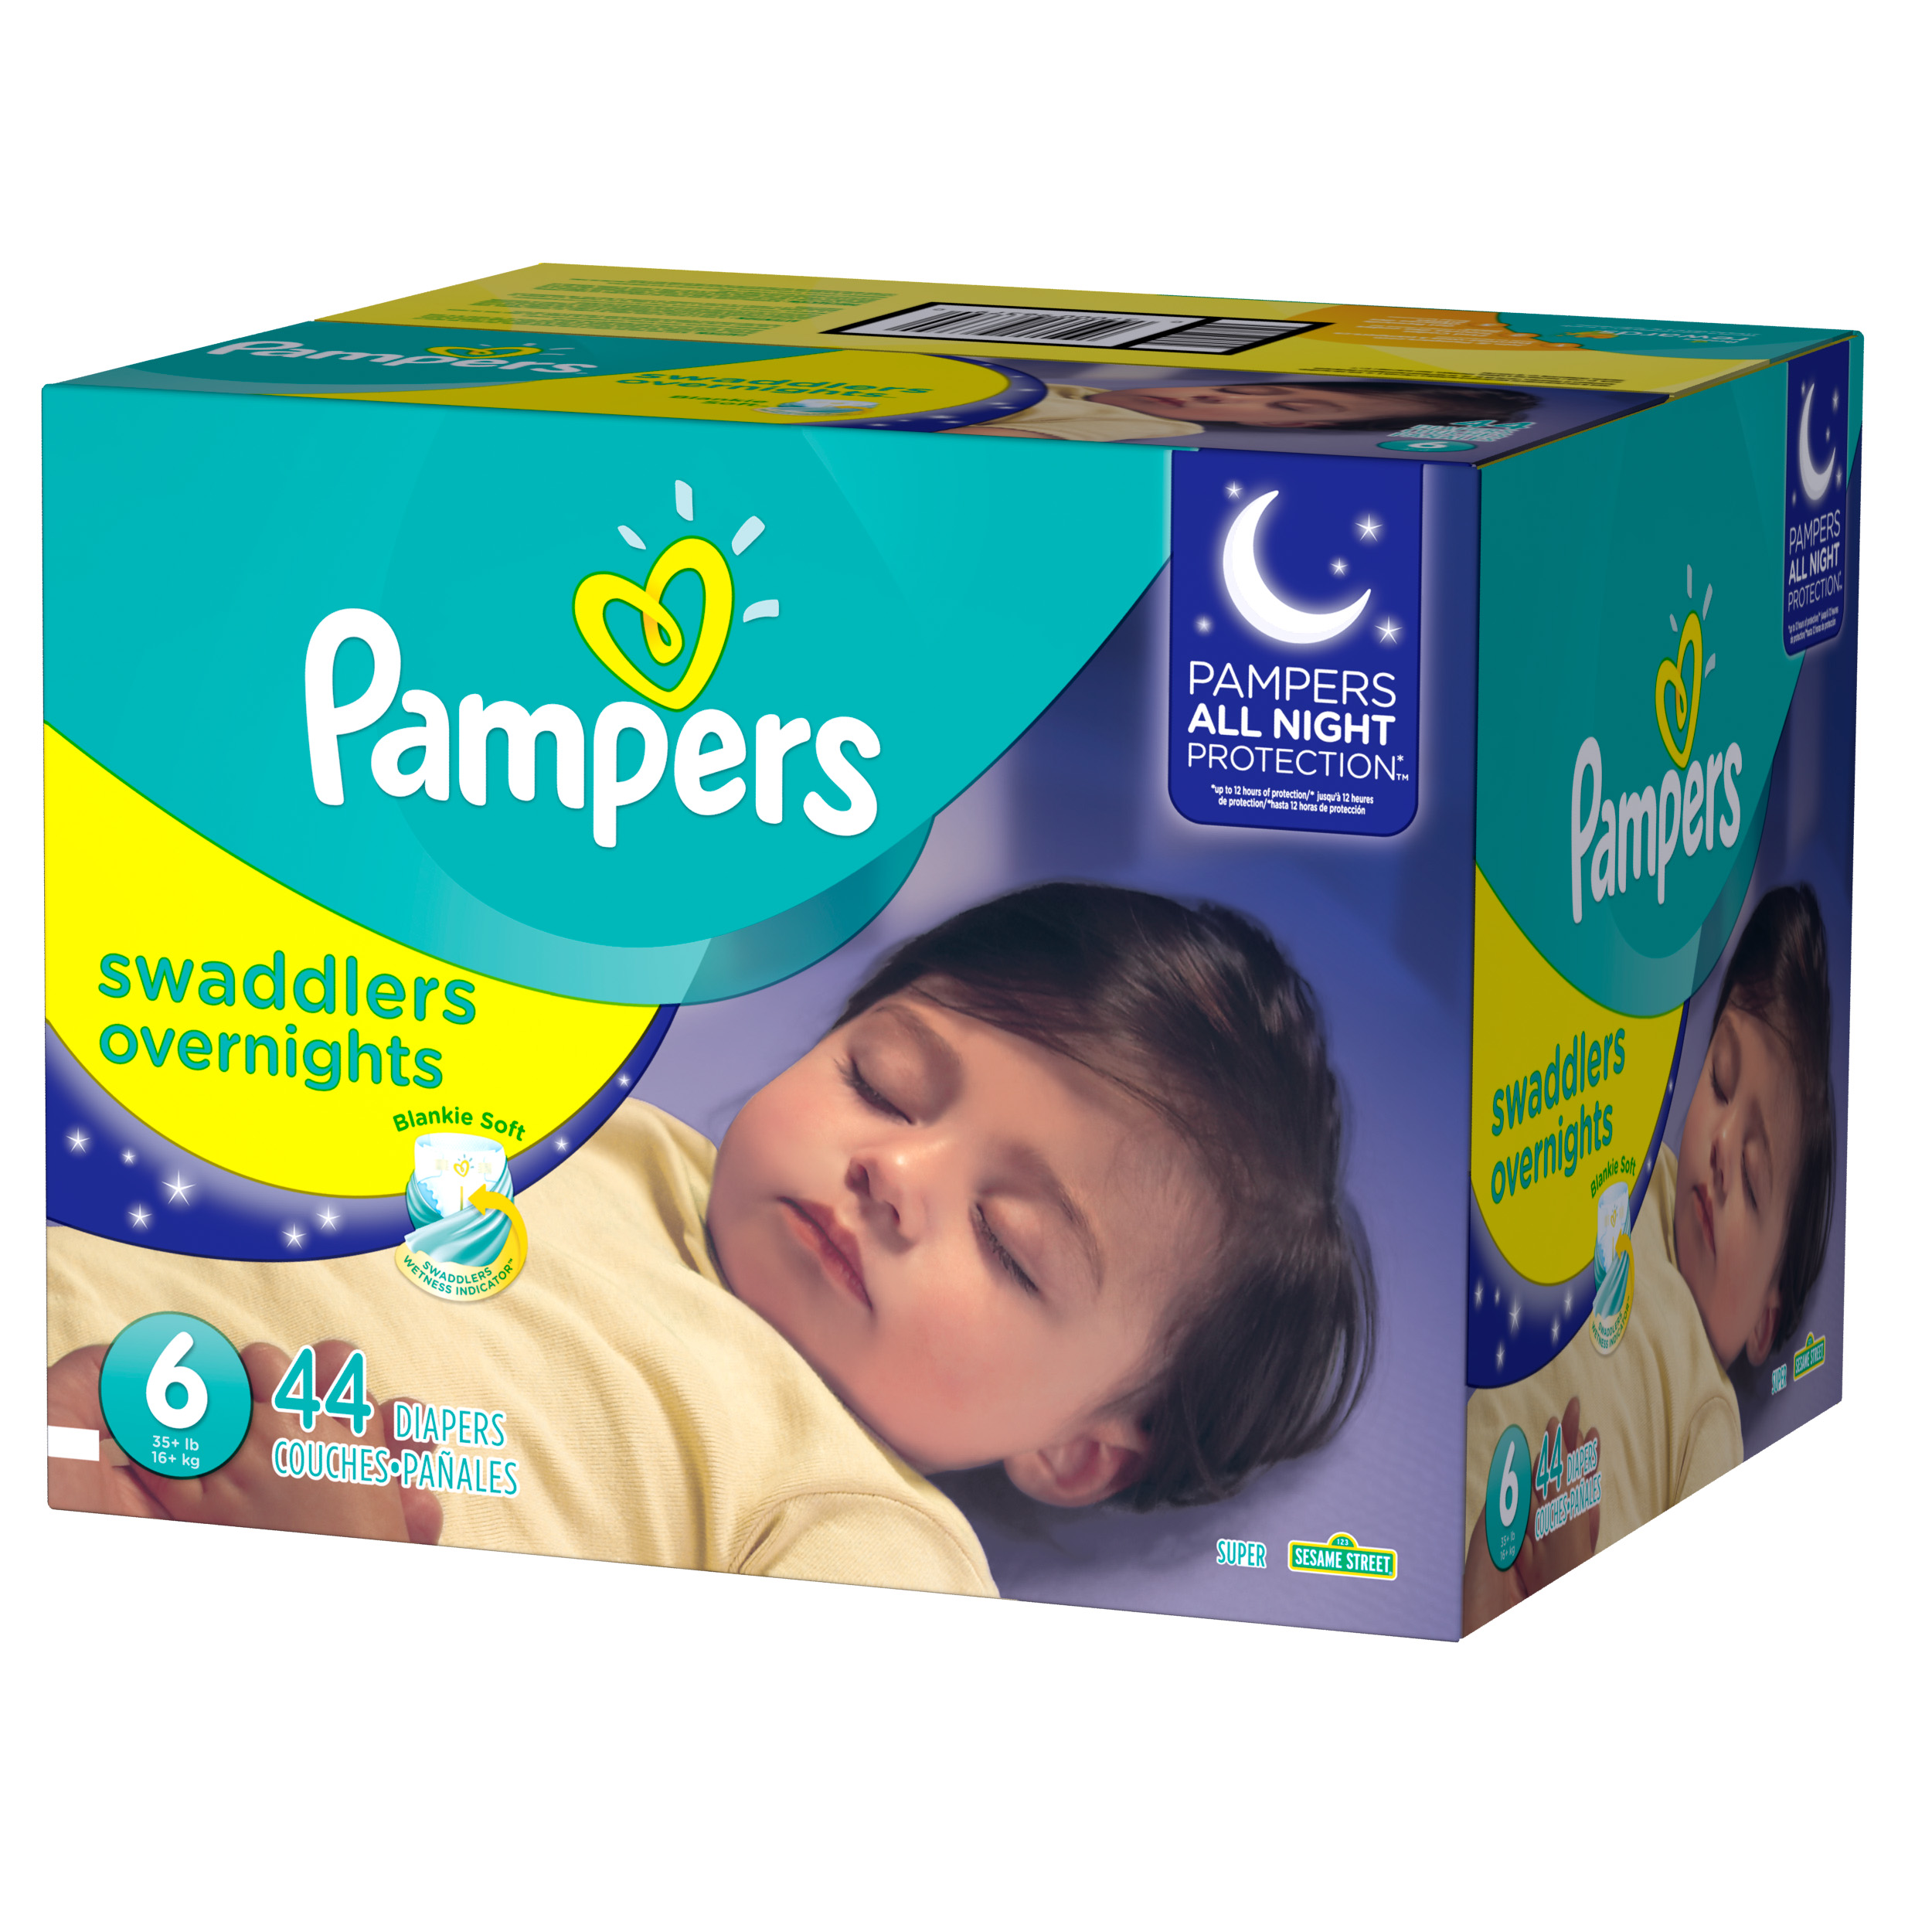 Pampers Swaddlers Overnights Diapers Size 6 44 Count